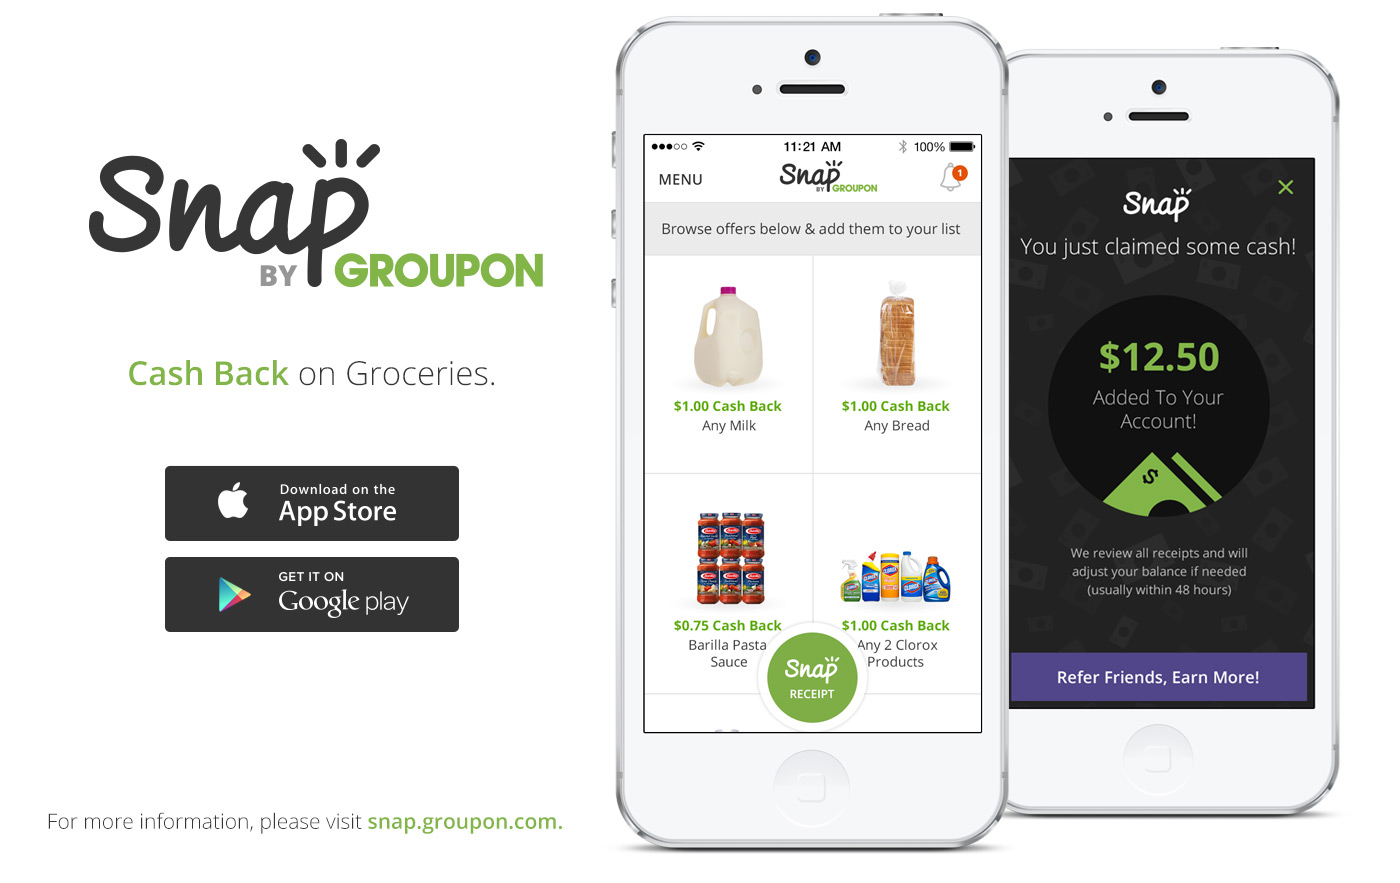 Groupon's Snap App Offers Cash-back on Groceries